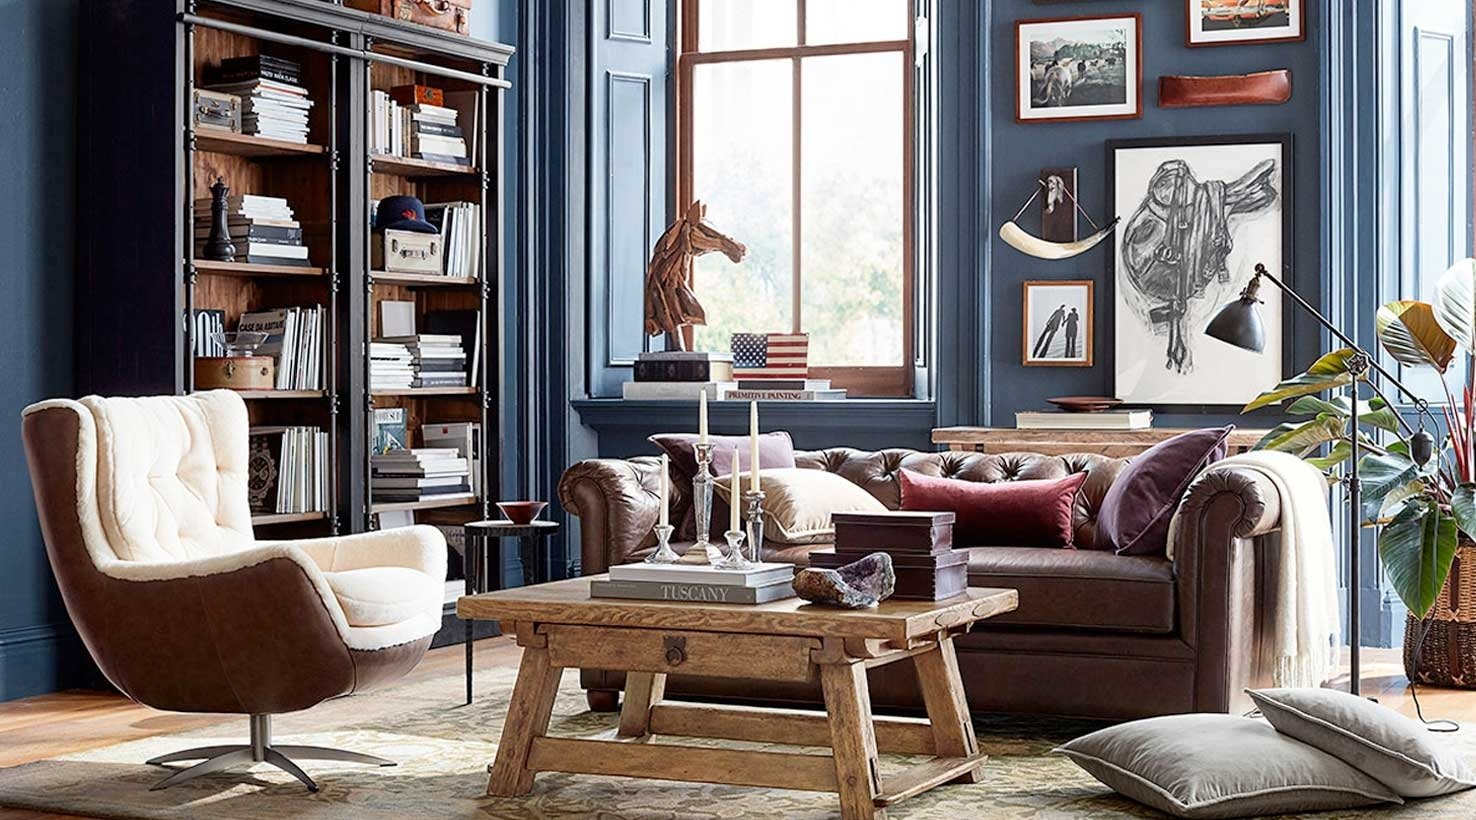 10 Lovely Living Room Paint Ideas Pictures living room paint color ideas inspiration gallery sherwin williams 49 2021